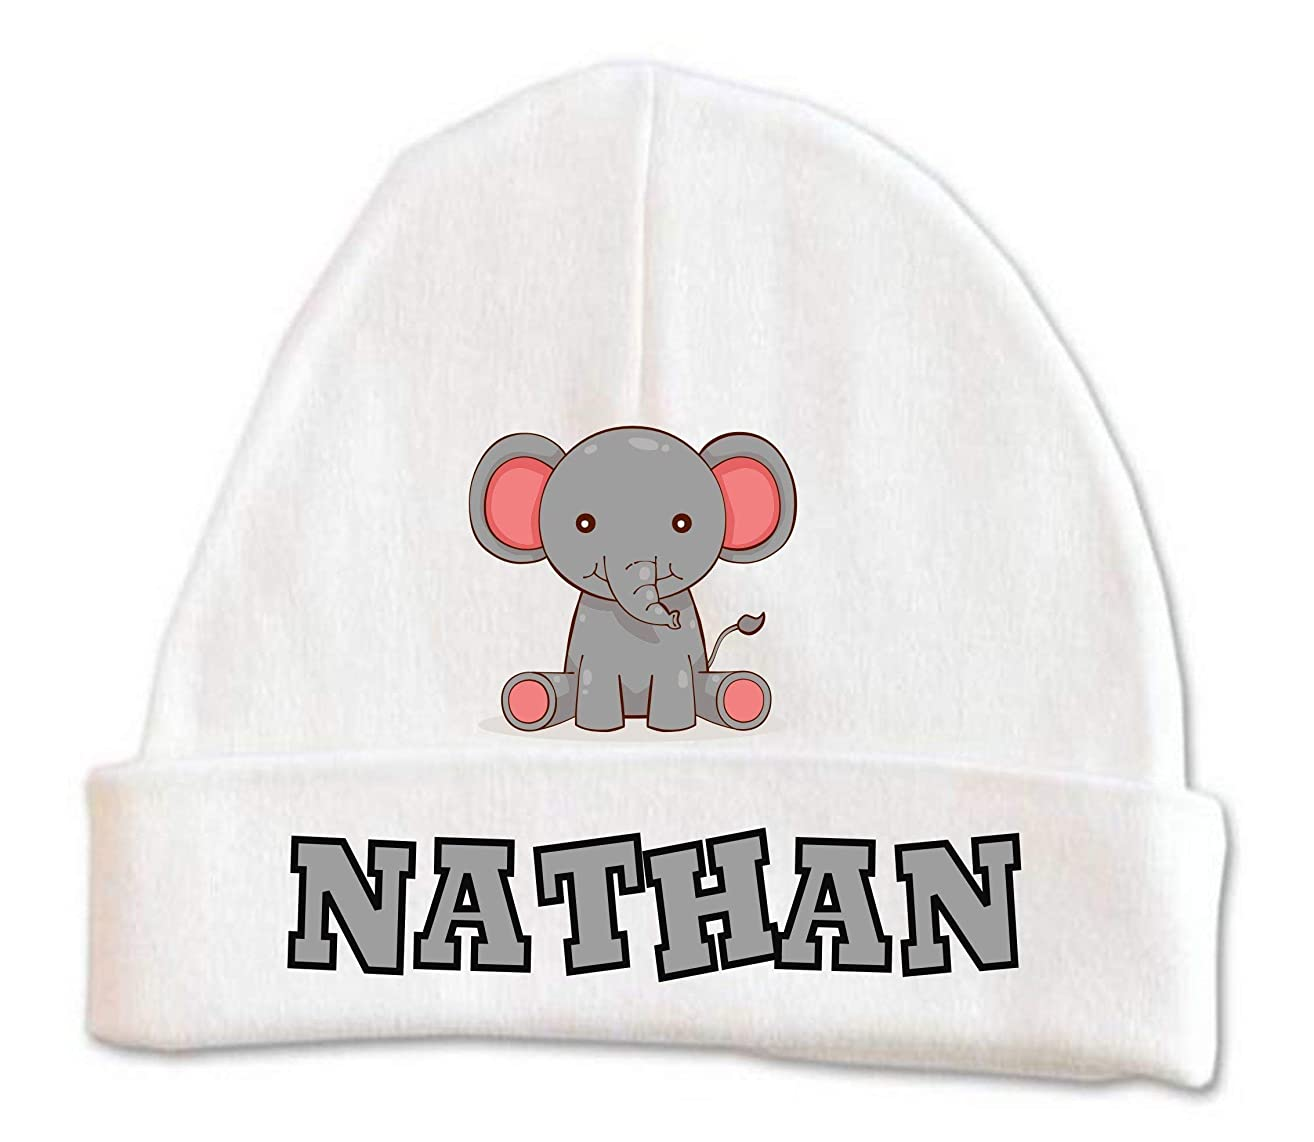 Cute Elephant Baby Beanie Hat Boys Winter Kids Warm Toddler Custom Infant Newborn Personalized 0-6 months